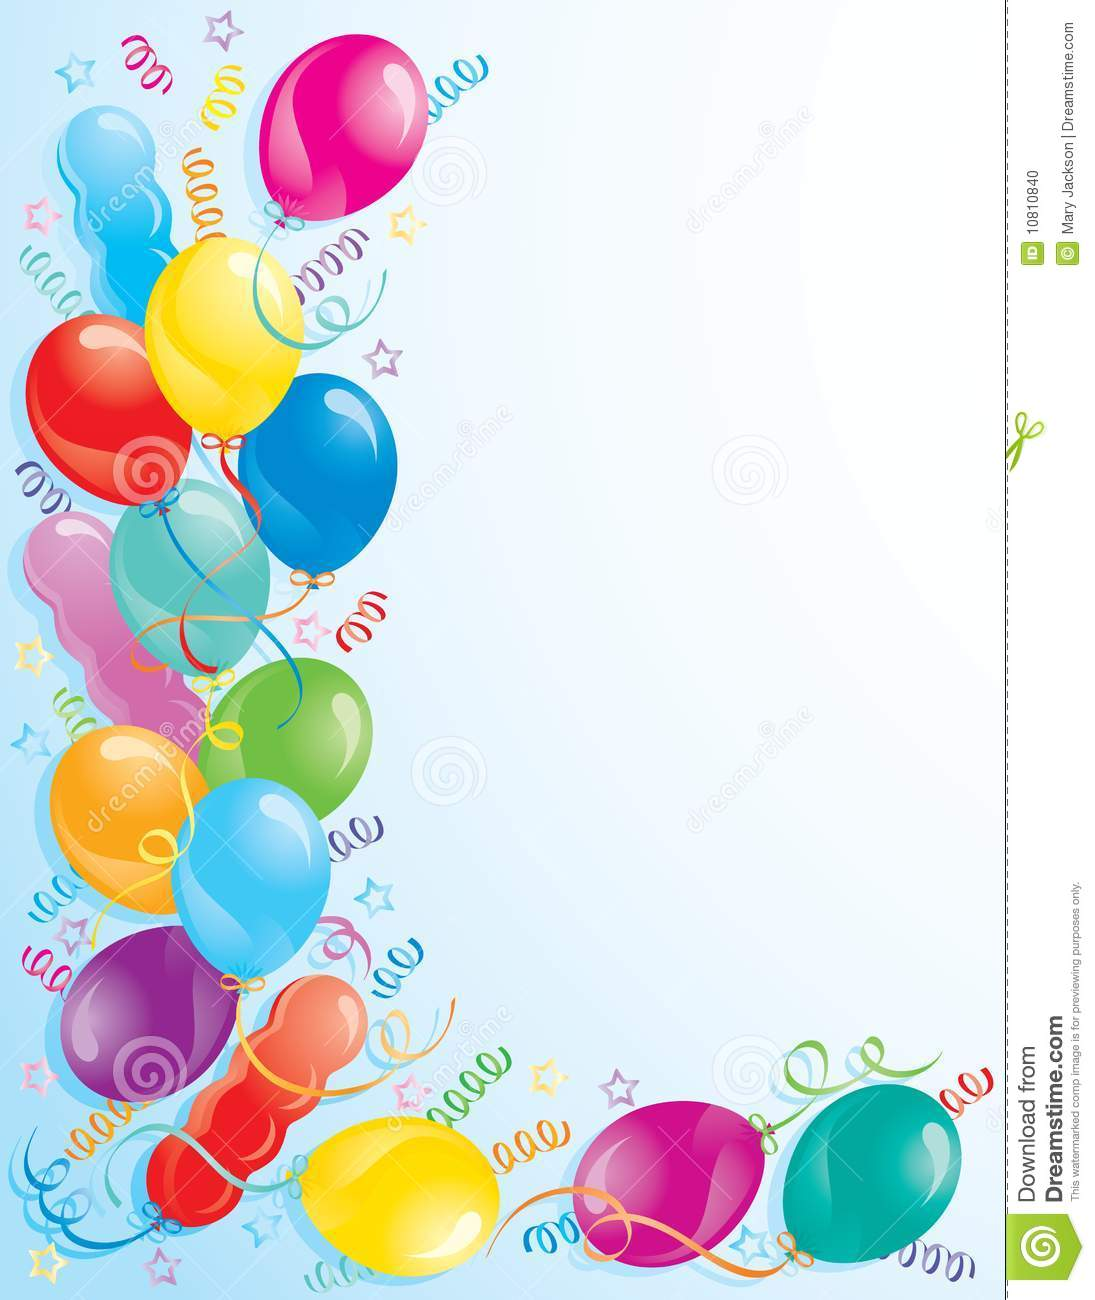 Party Balloons Stock Photo - Image: 10810840